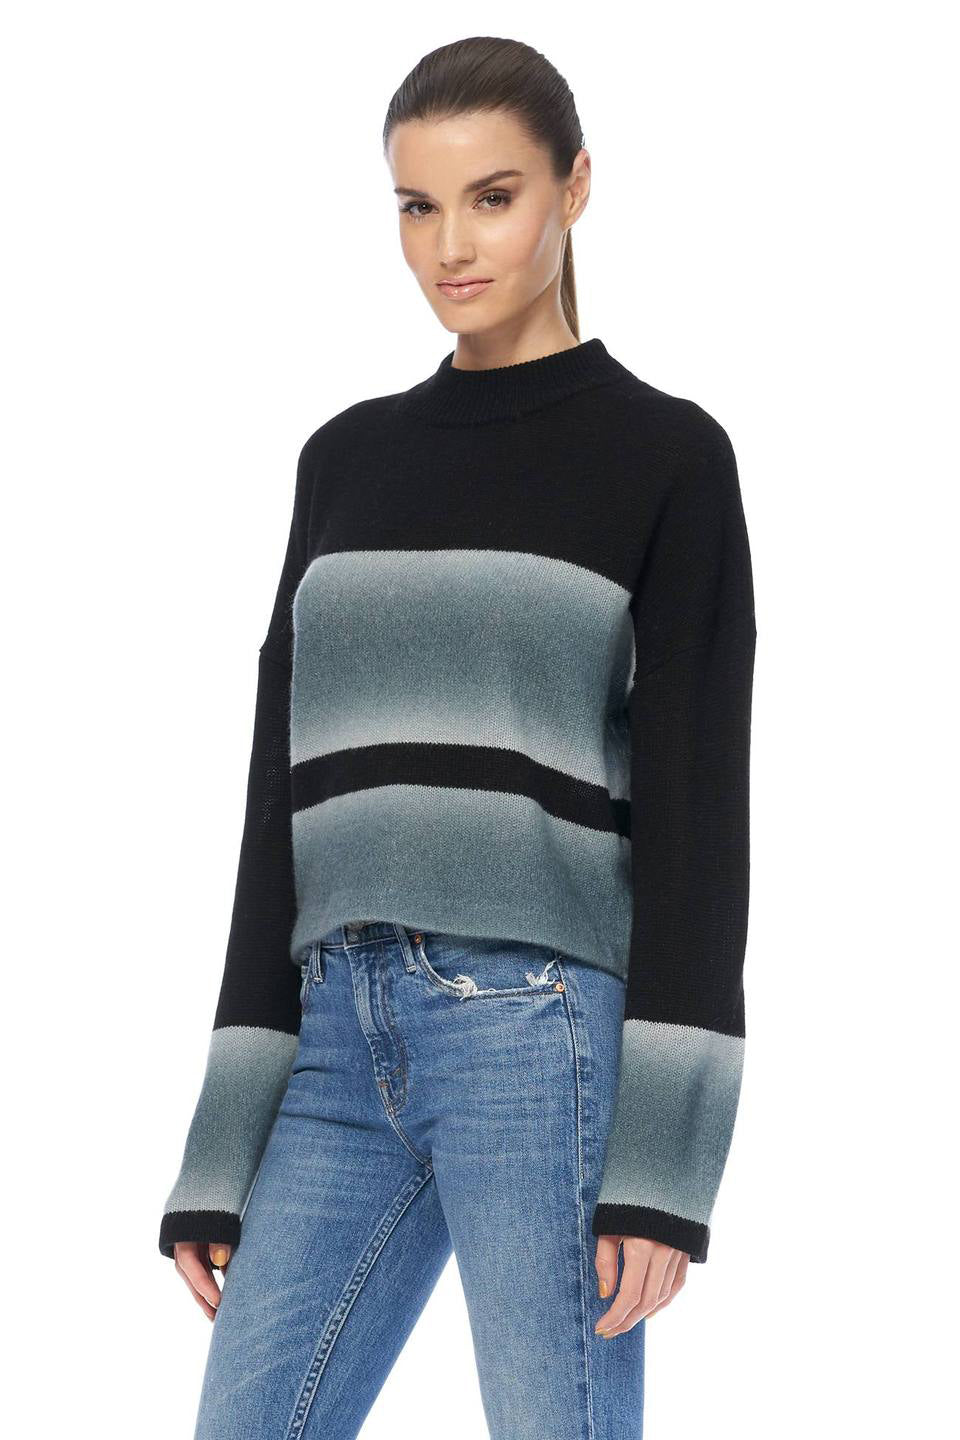 360sweater ella